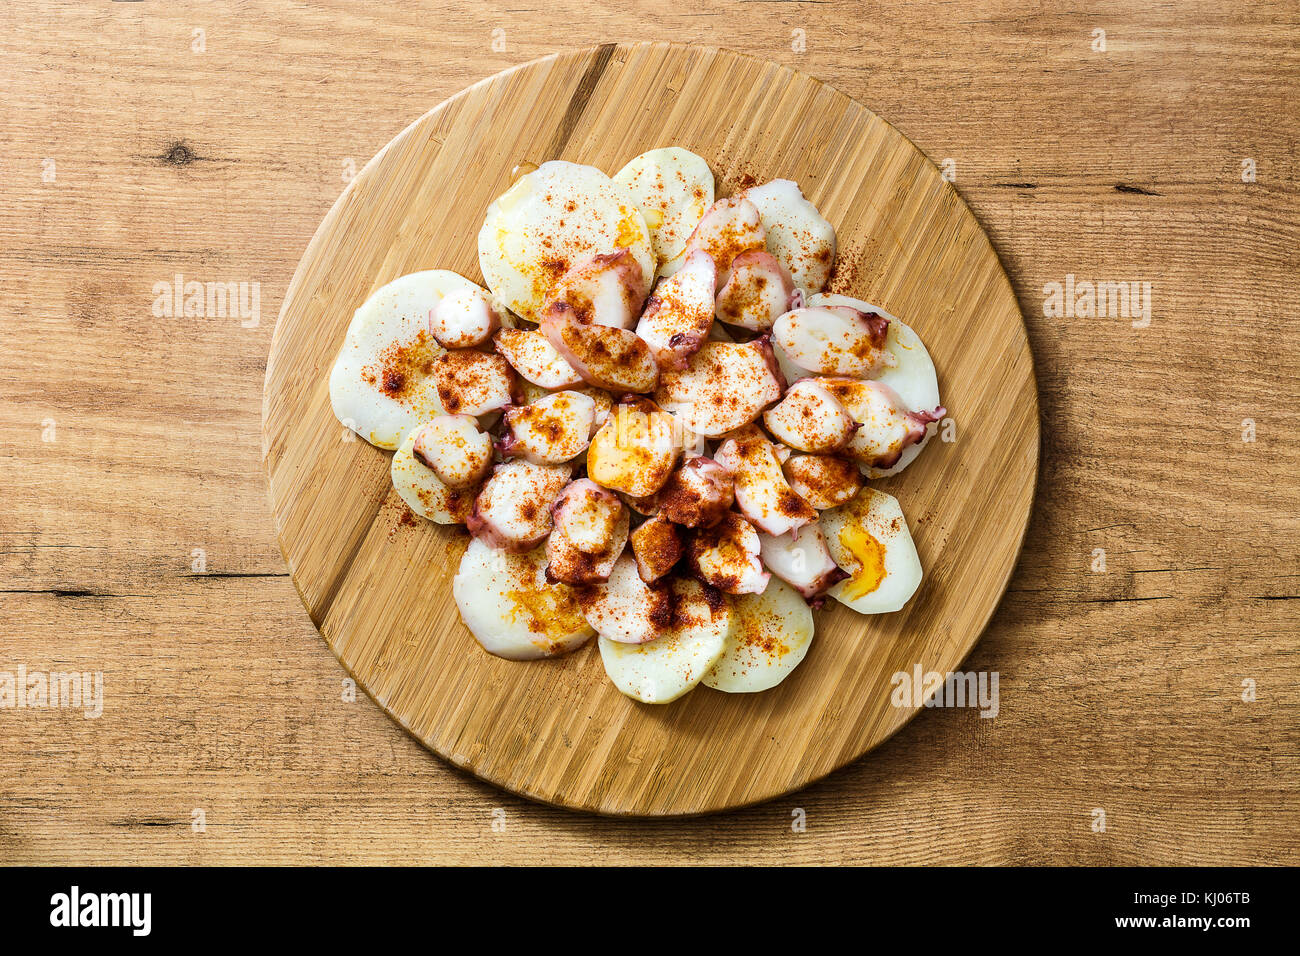 Typical Food Stock Photos & Typical Food Stock Images - Alamy